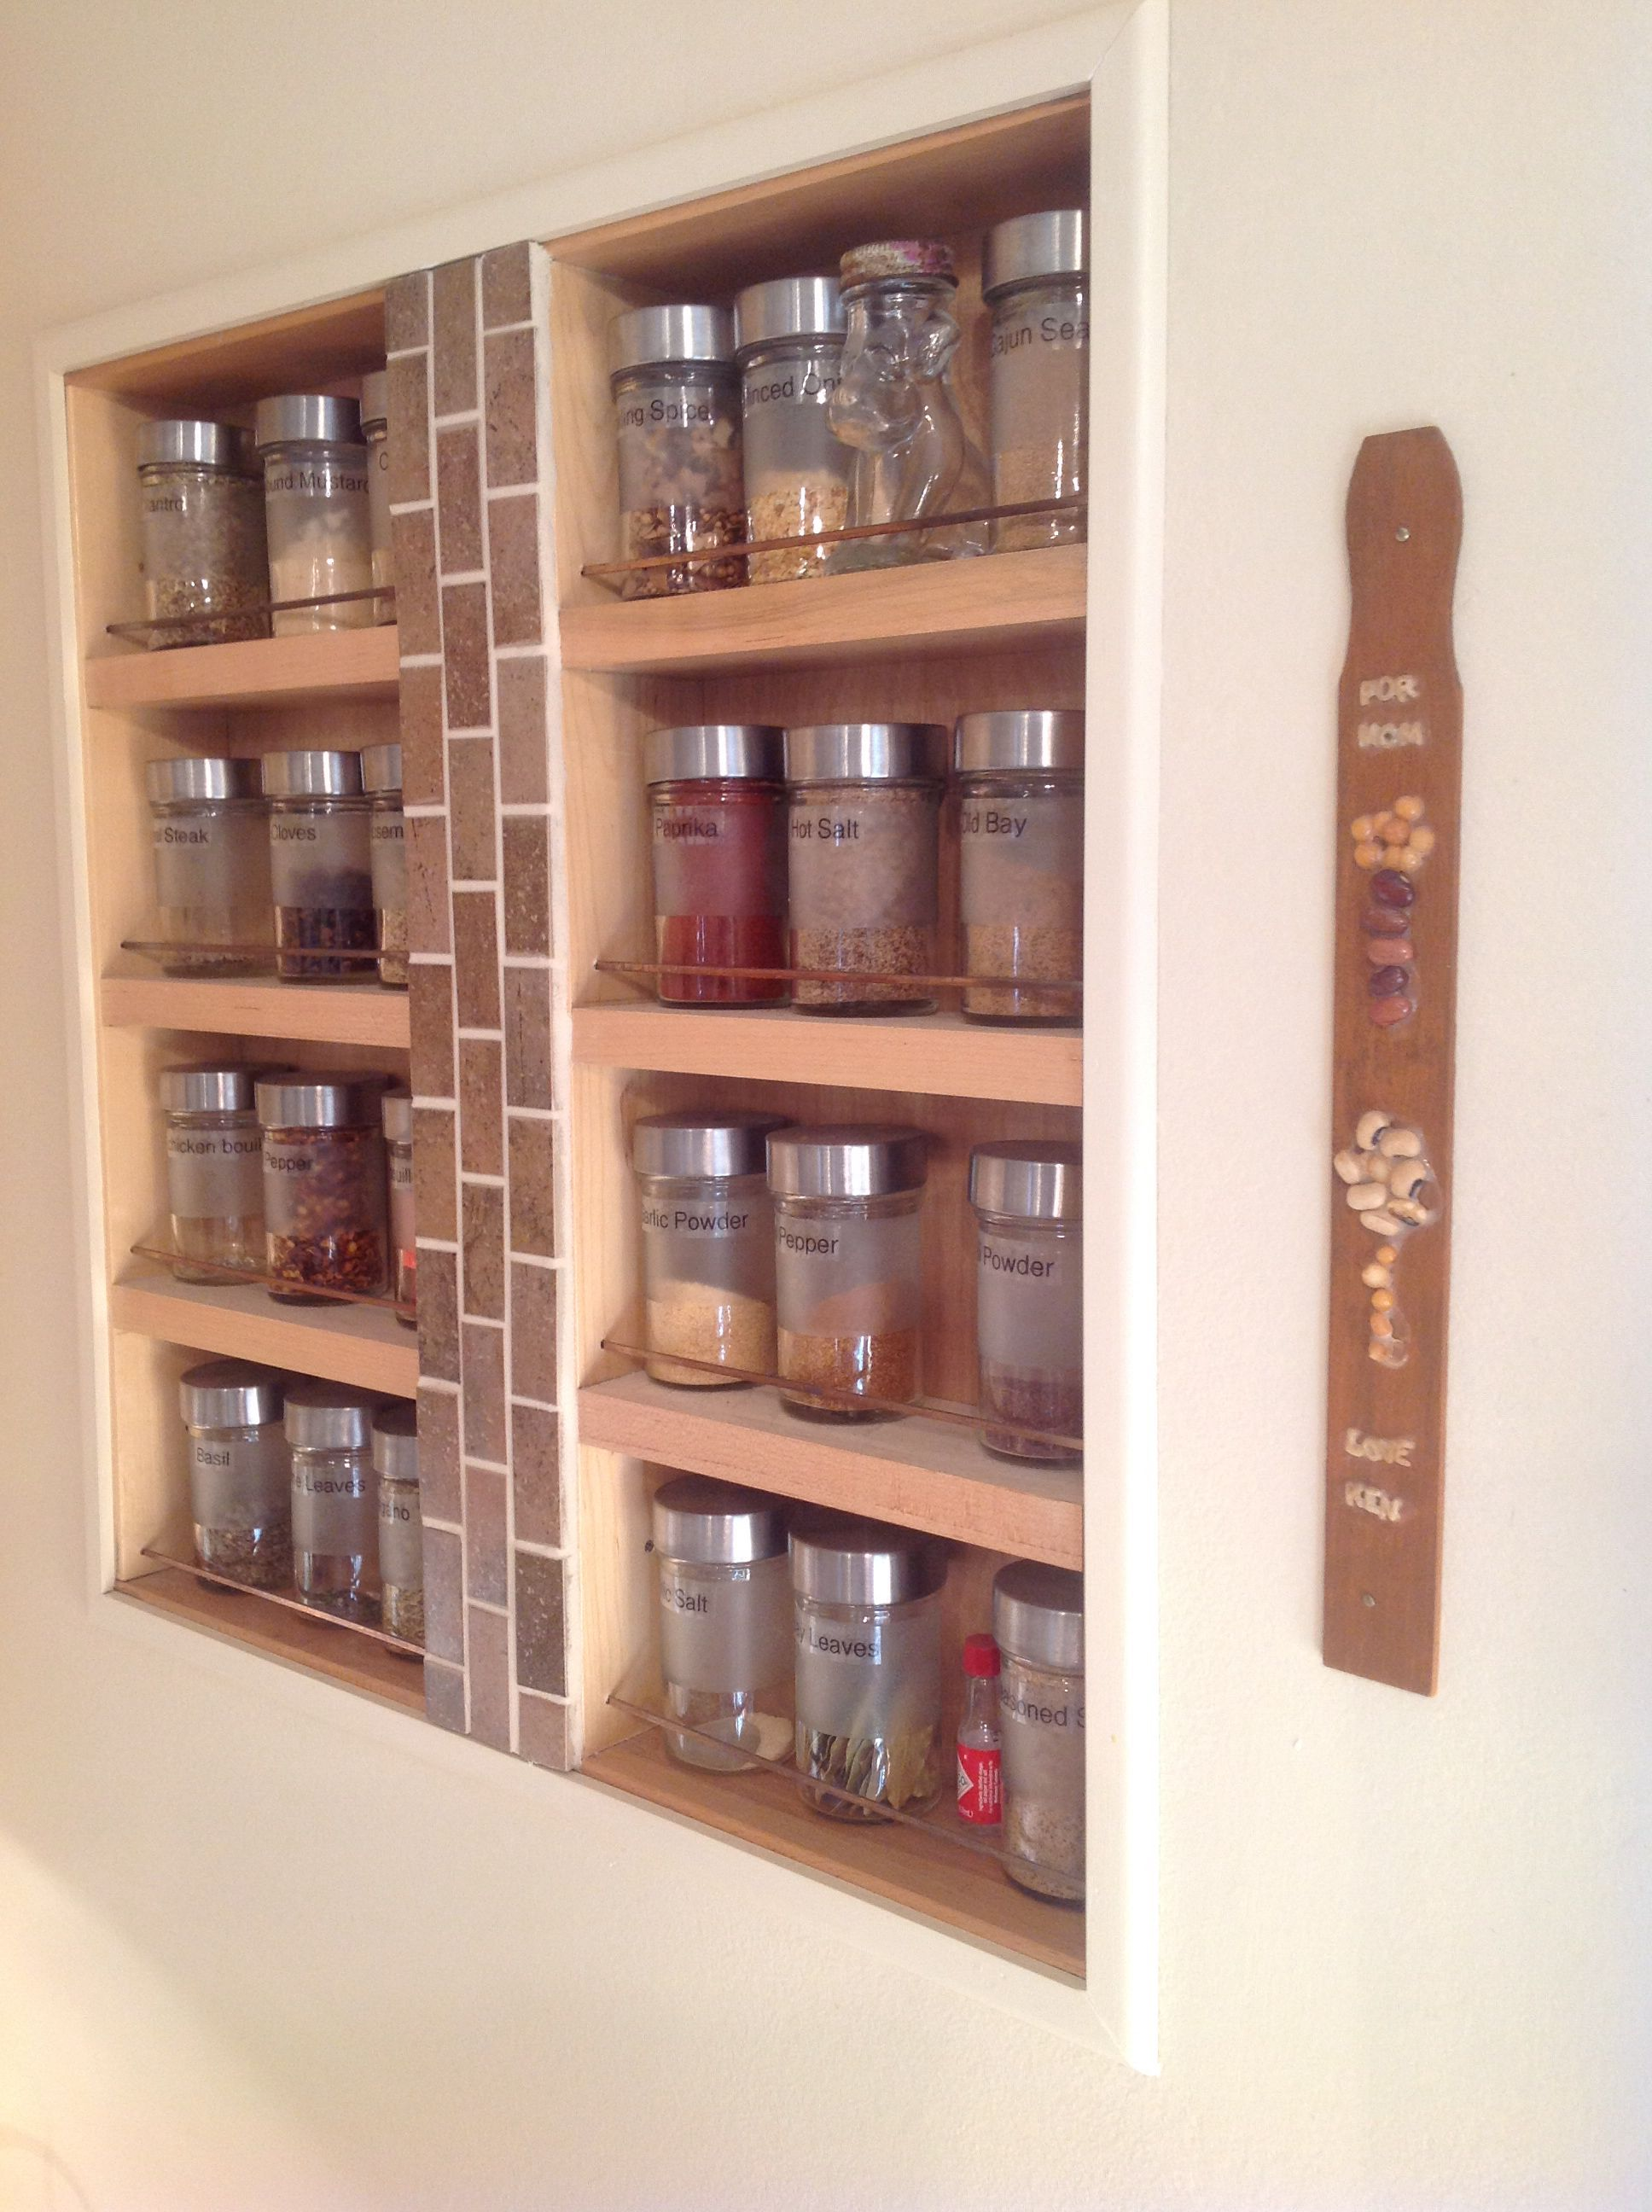 Spice rack made from kitchen drawers Inset between studs and framed